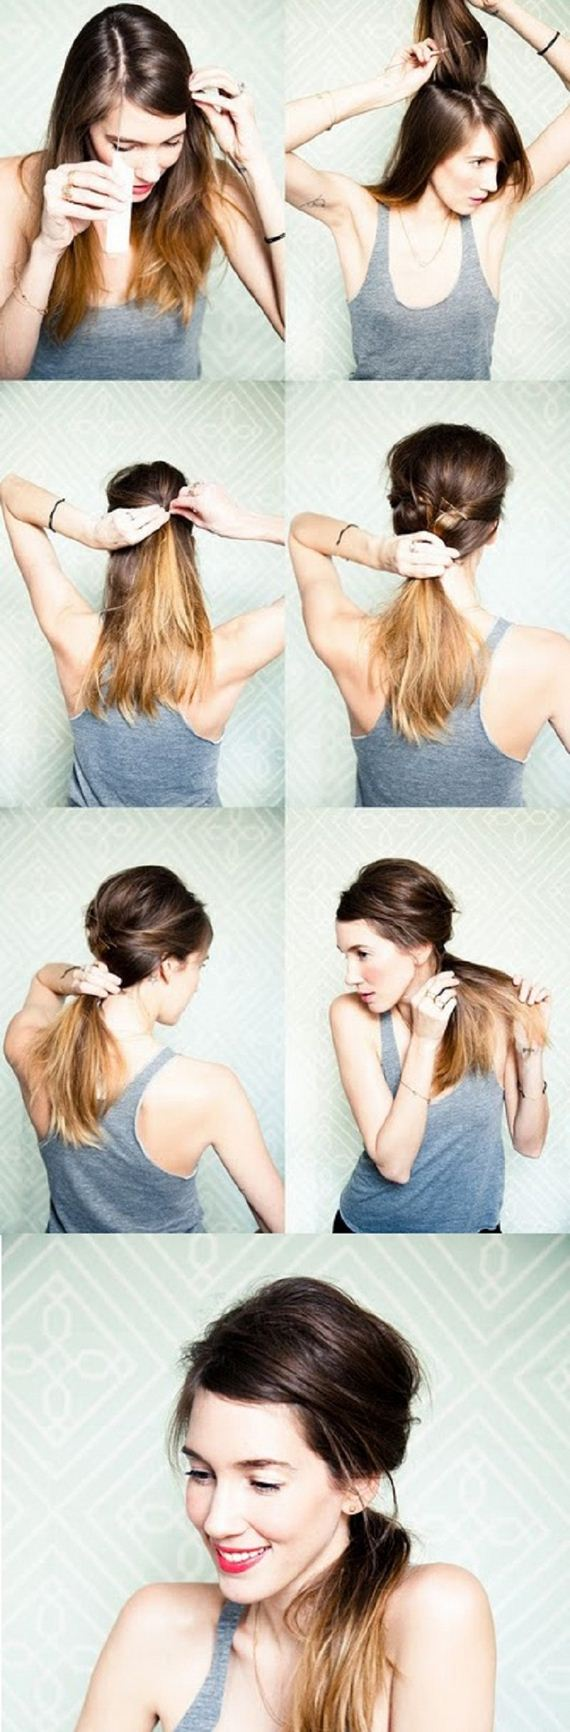 10-Fashionable-Ponytail-Tutorials